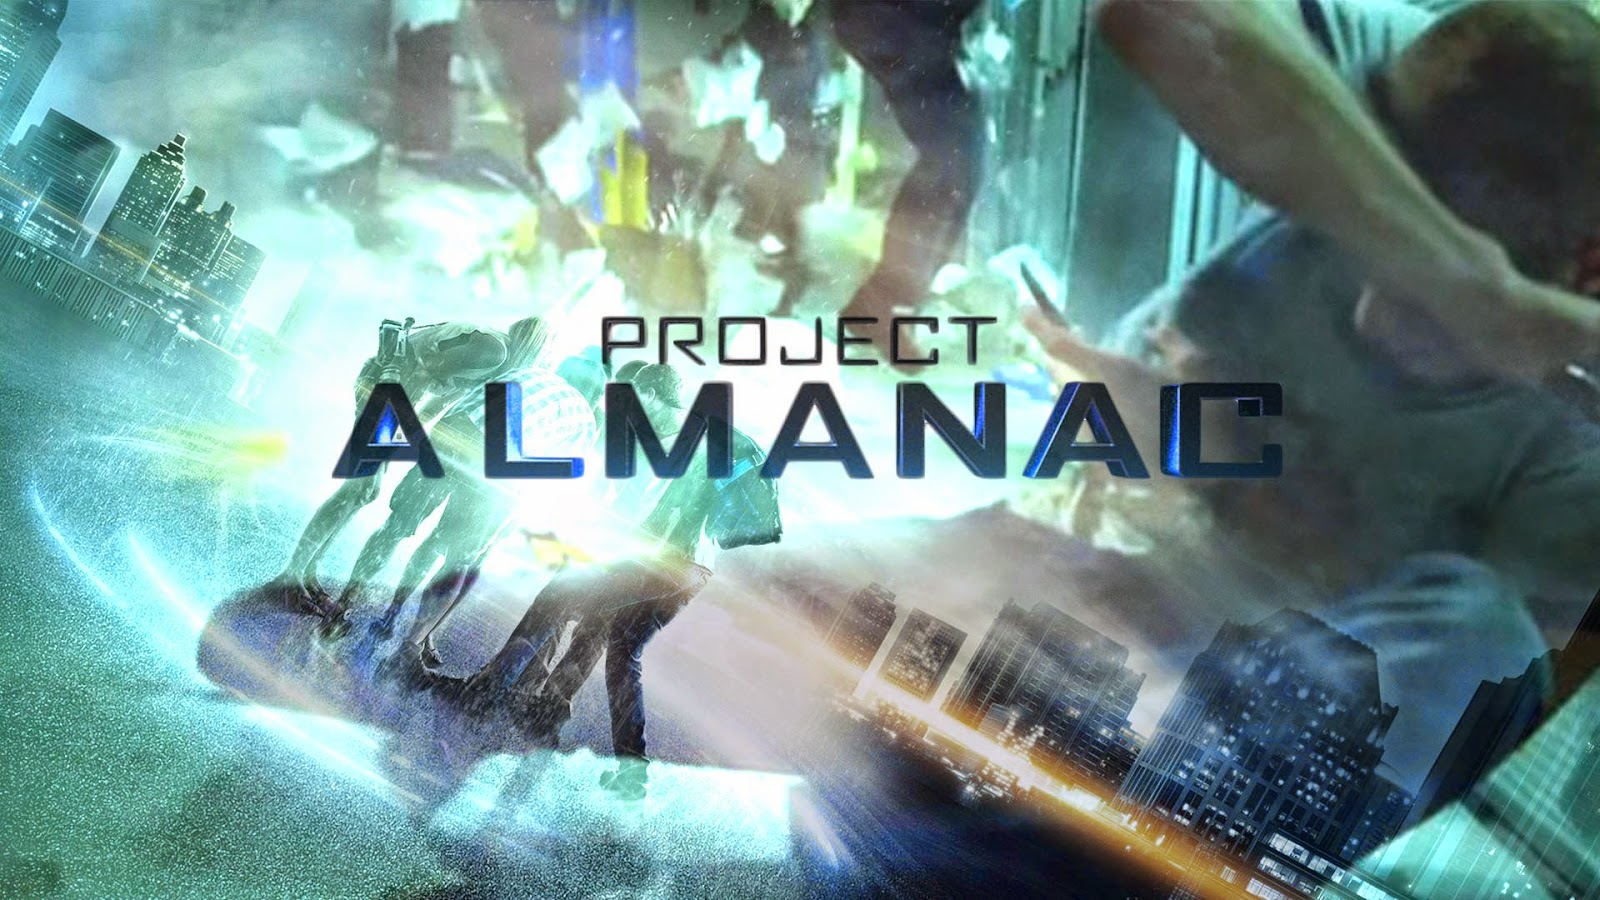 HD Project Almanac photos screen shots poster